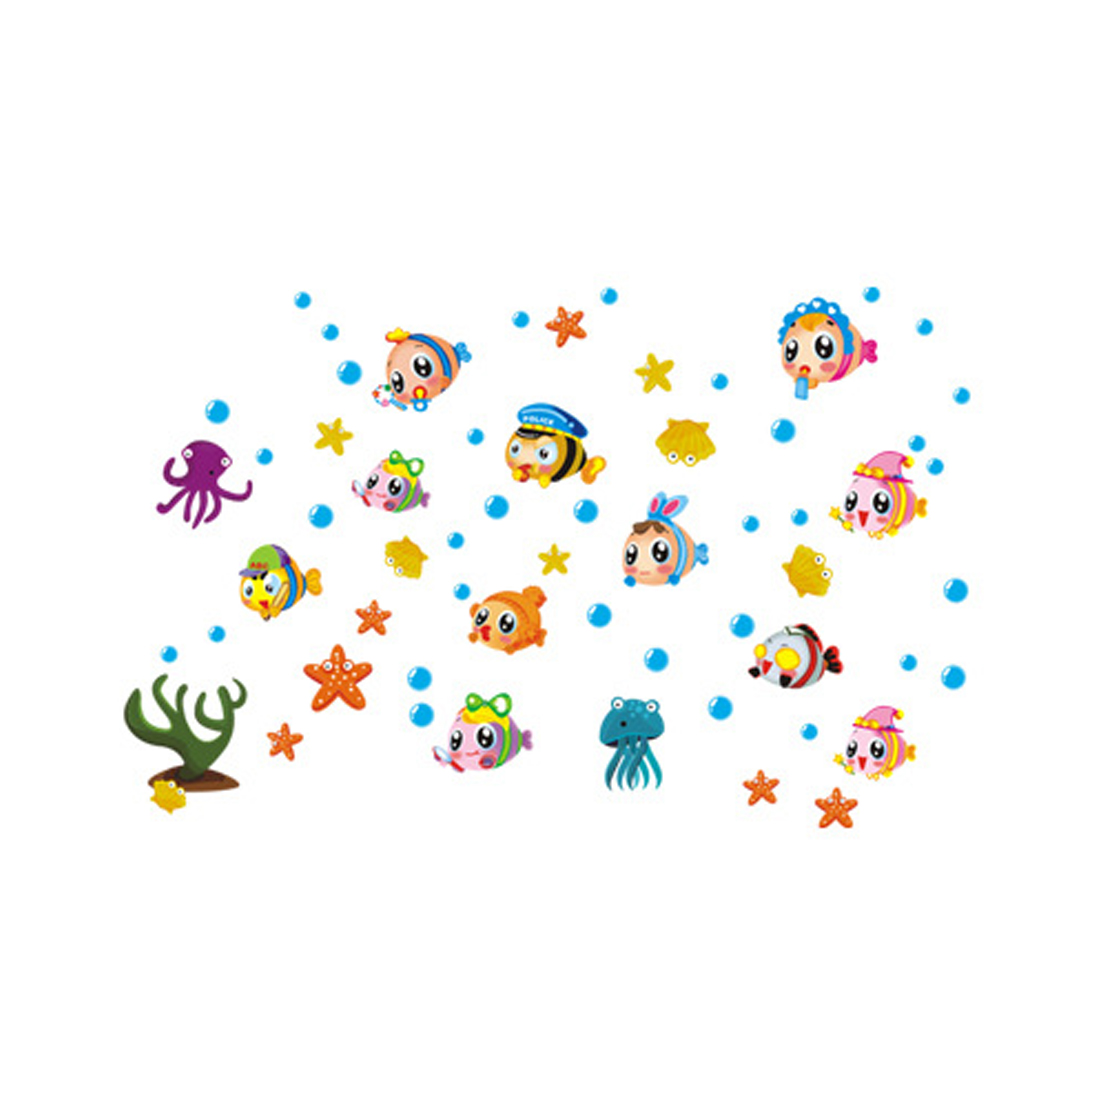 Décoration Murale Adhésive Home Room Decor Cartoon Style Fish Pattern Adhesive Wall Mural Decal Sticker